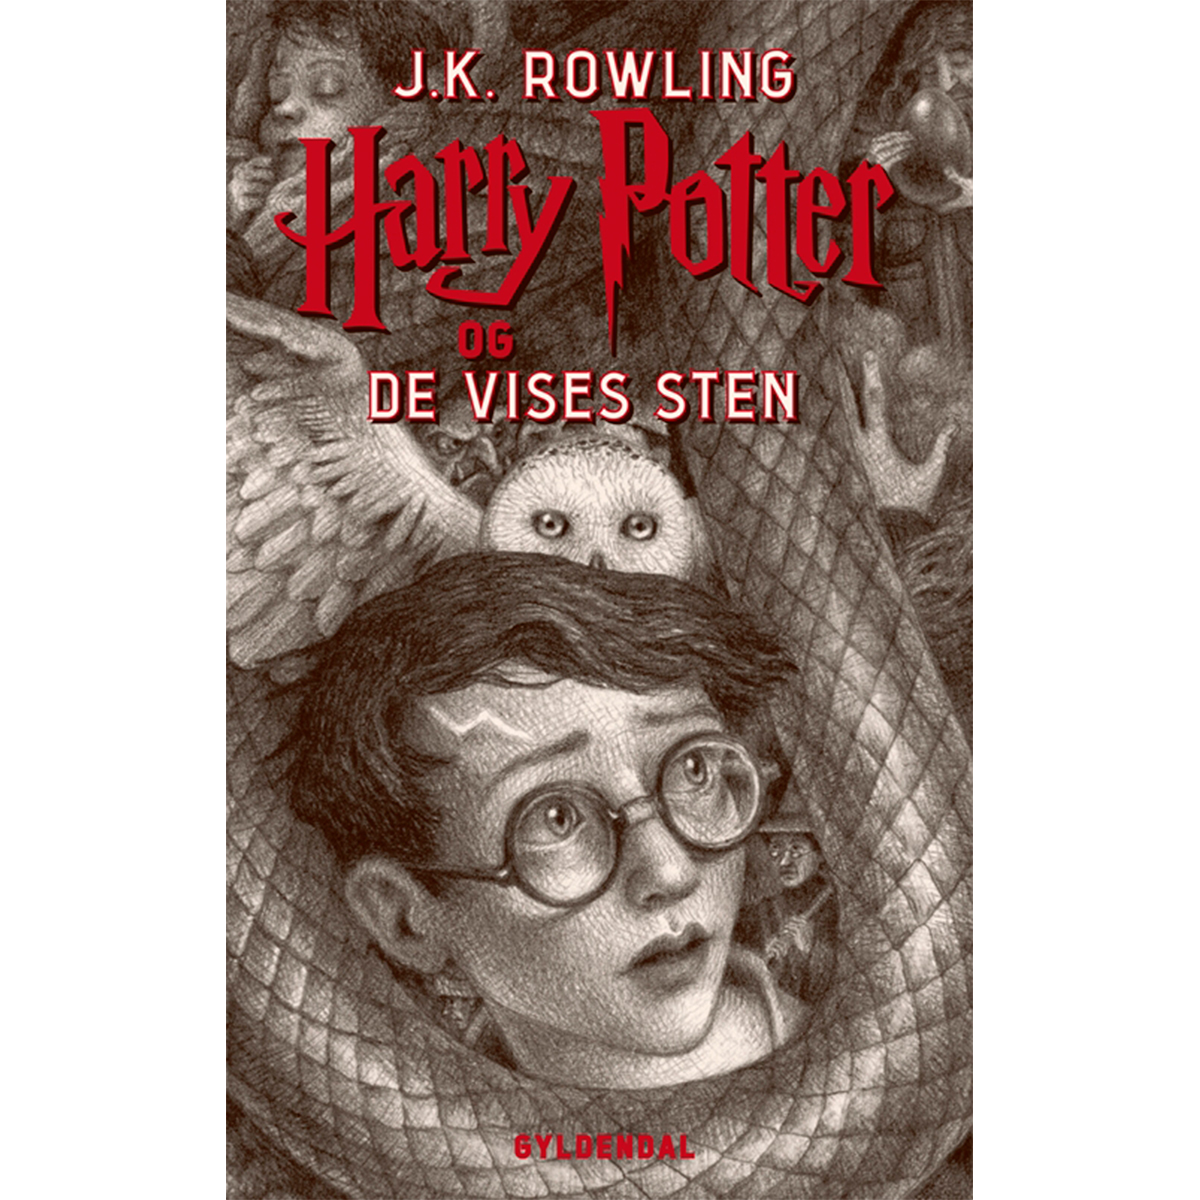 Harry Potter og de vises sten - Harry Potter 1 - Hæftet